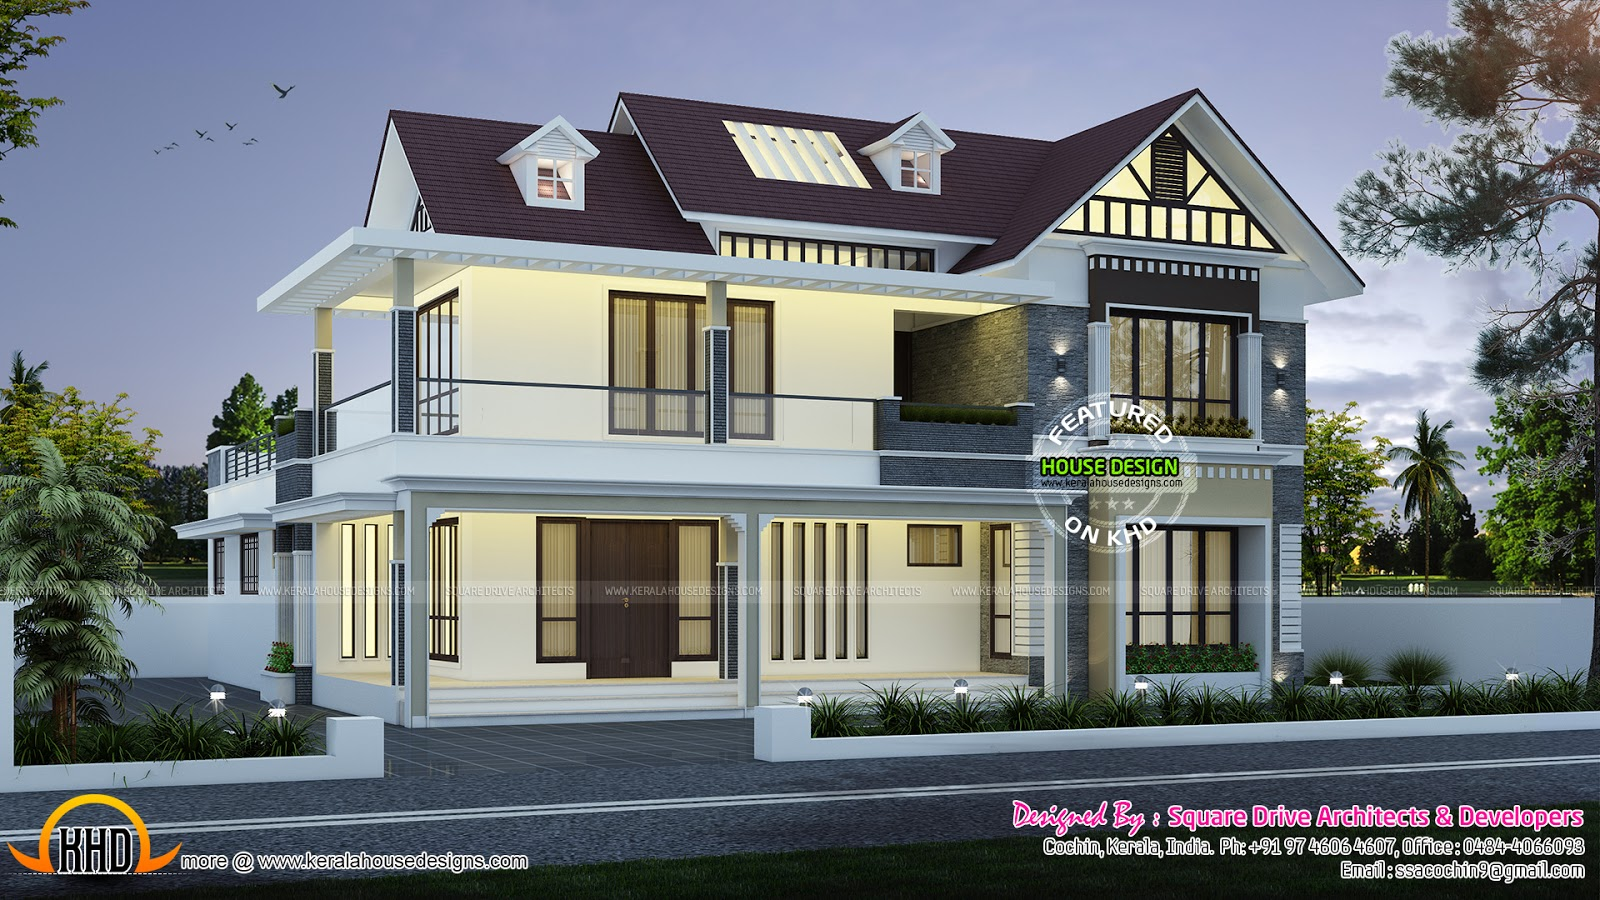 Cute dormer window house plan kerala home design and floor plans - House plans dormers ...